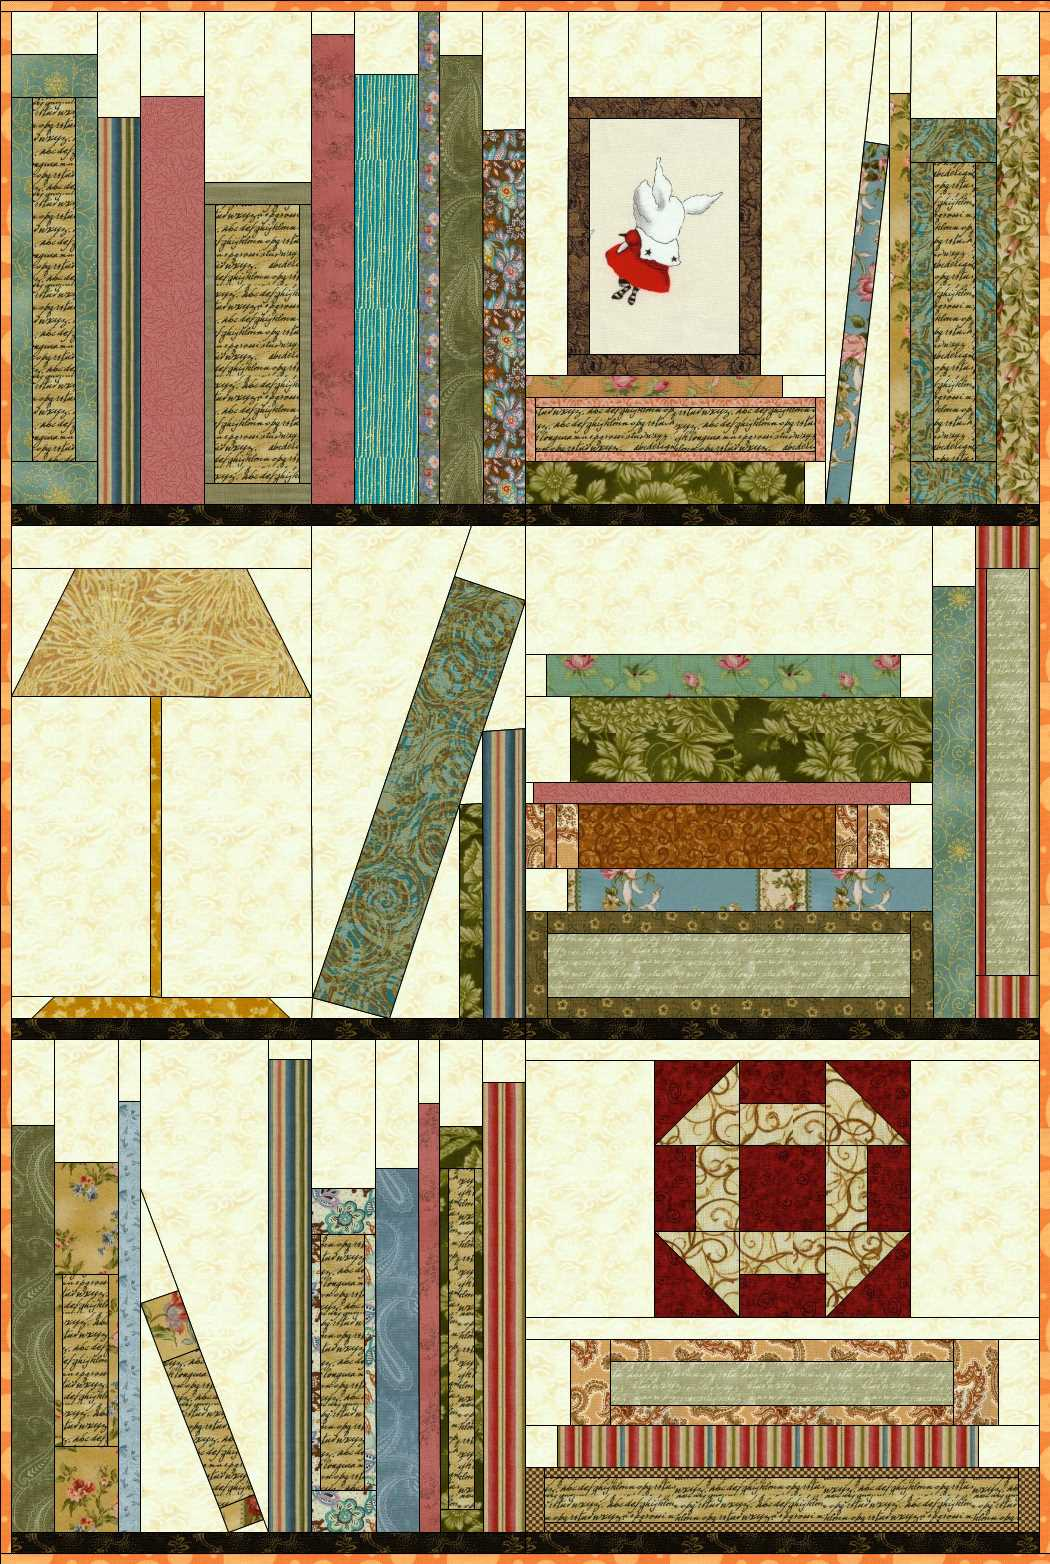 Bookshelf Quilt Instructions Download wood round dining table plans ...